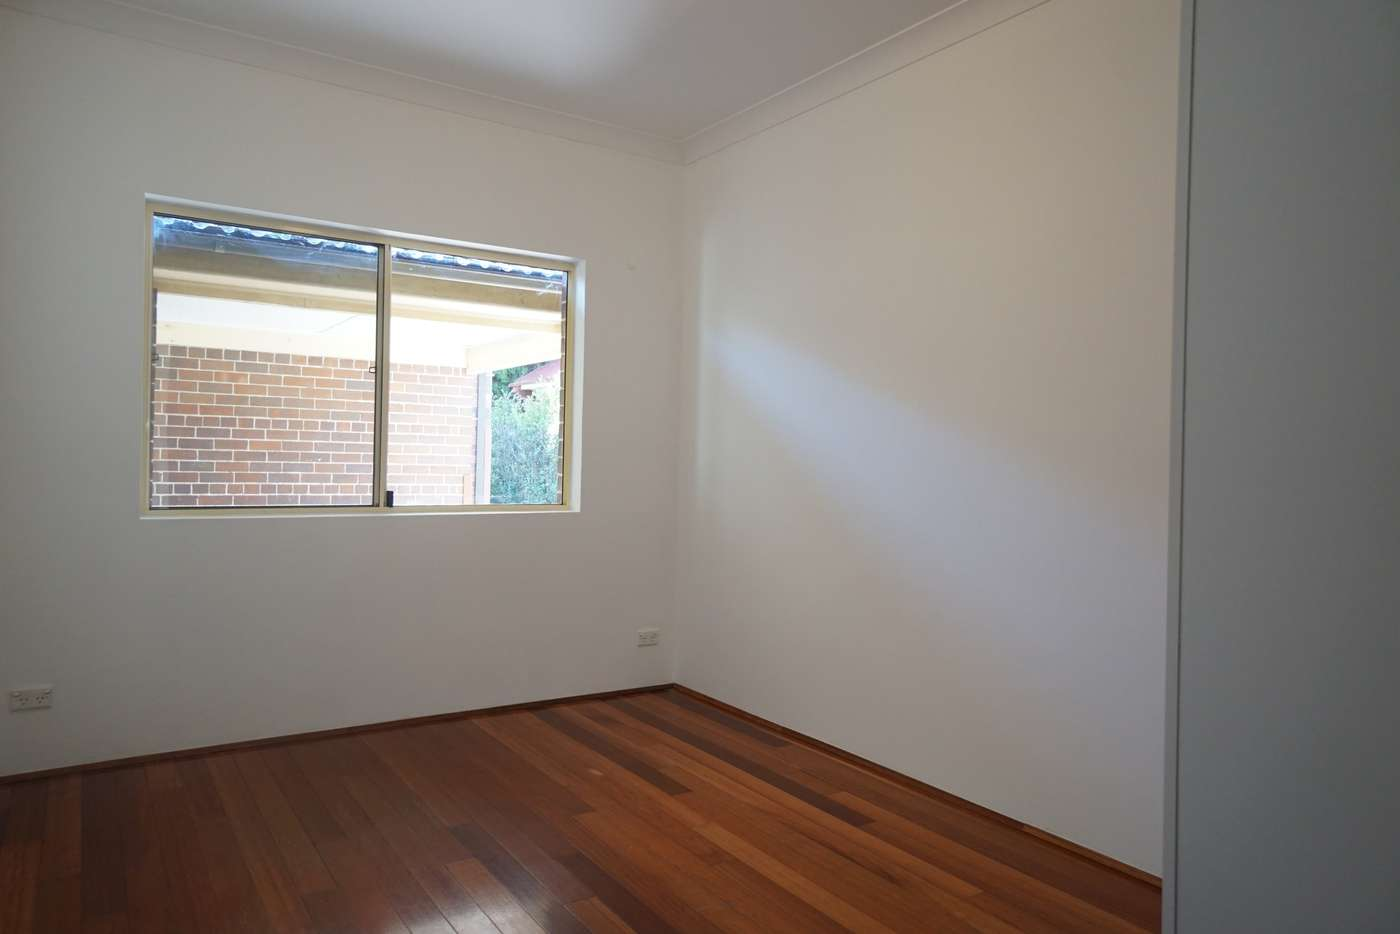 Sixth view of Homely house listing, 163A Shaftsbury Road, Eastwood NSW 2122